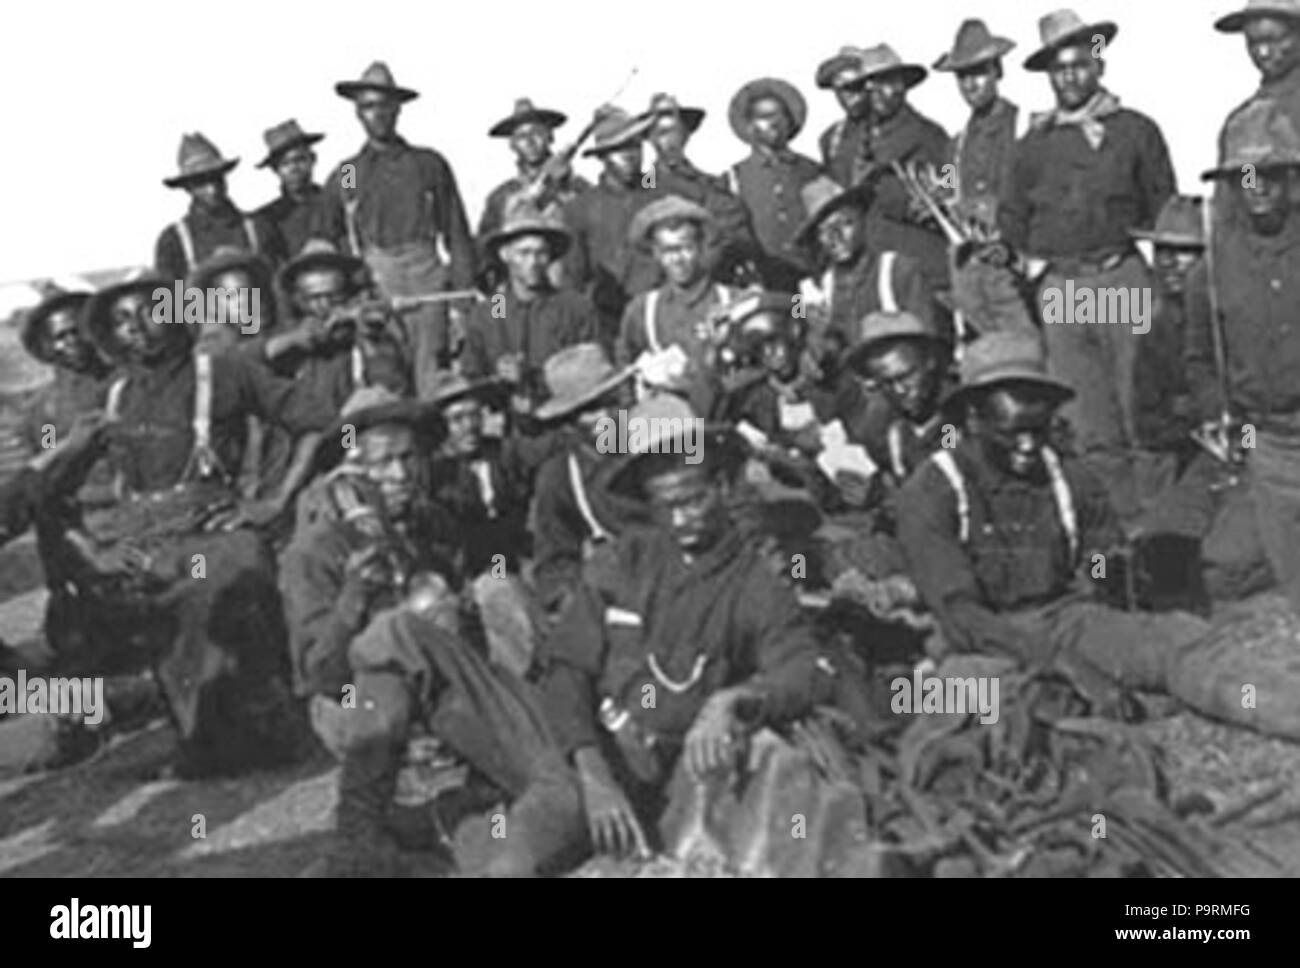 . Buffalo Soldiers of the 10th Cavalry Regiment circa 1898, Augustus Walley (top row, 2nd from right, with the bandana around his neck), a former slave from Bond Avenue in Reisterstown, MD, earned the Medal of Honor. circa 1898 256 BuffaloSoldiersAW Stock Photo